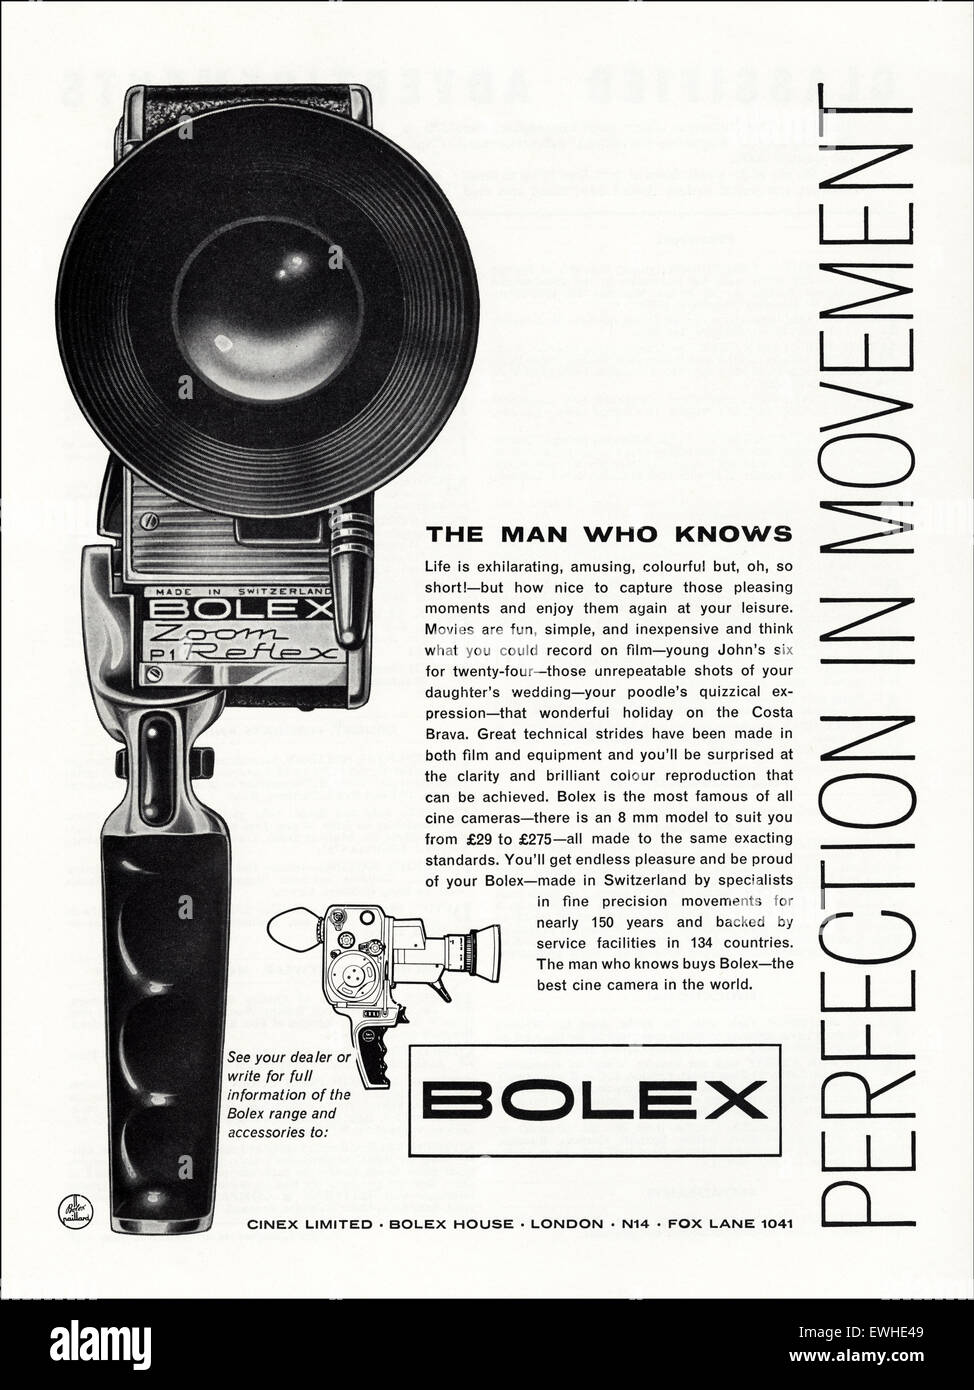 1960s advertisement circa 1962 magazine advert for Bolex cine cameras - Stock Image